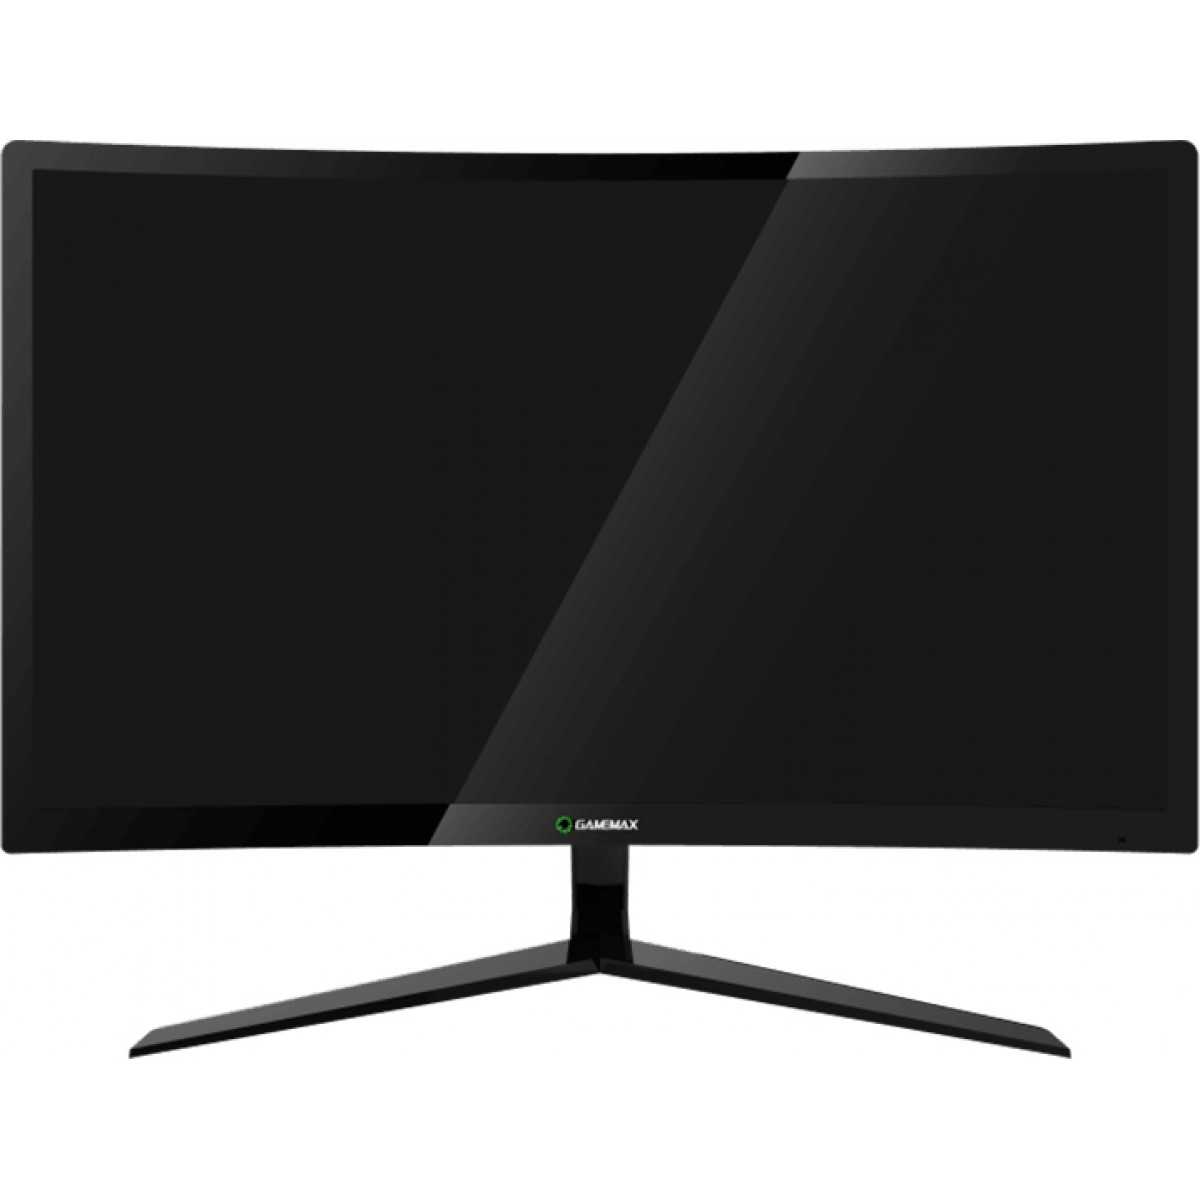 Monitor Gamer GameMax 24 Pol Curvo, Full HD, 144Hz, 1ms, Black, GMX24C144